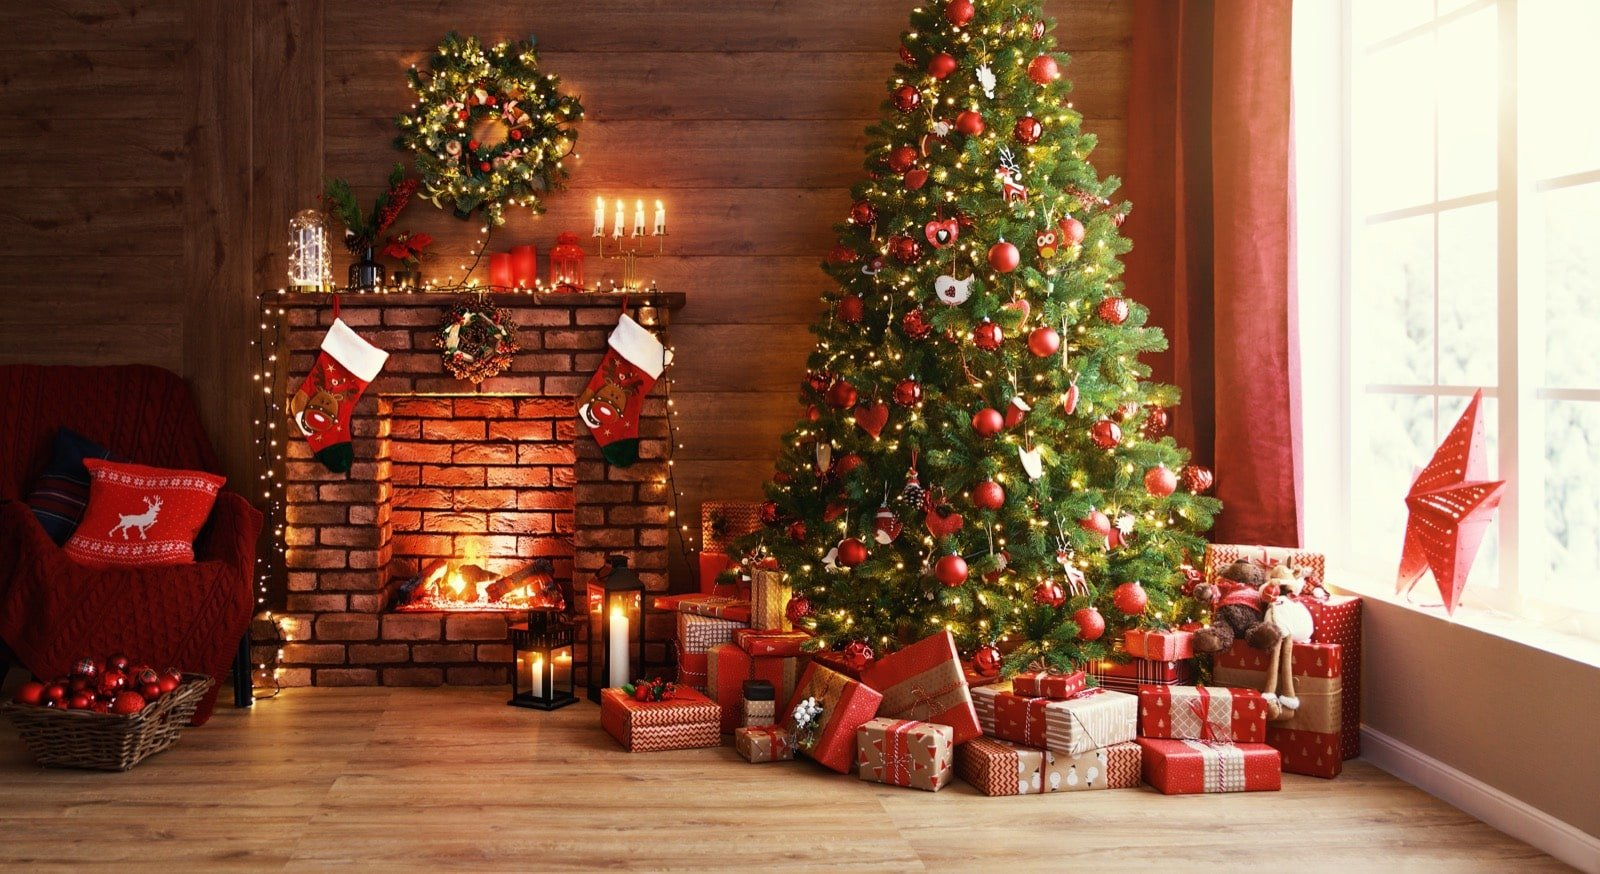 How Long Does a Real Christmas Tree Last?